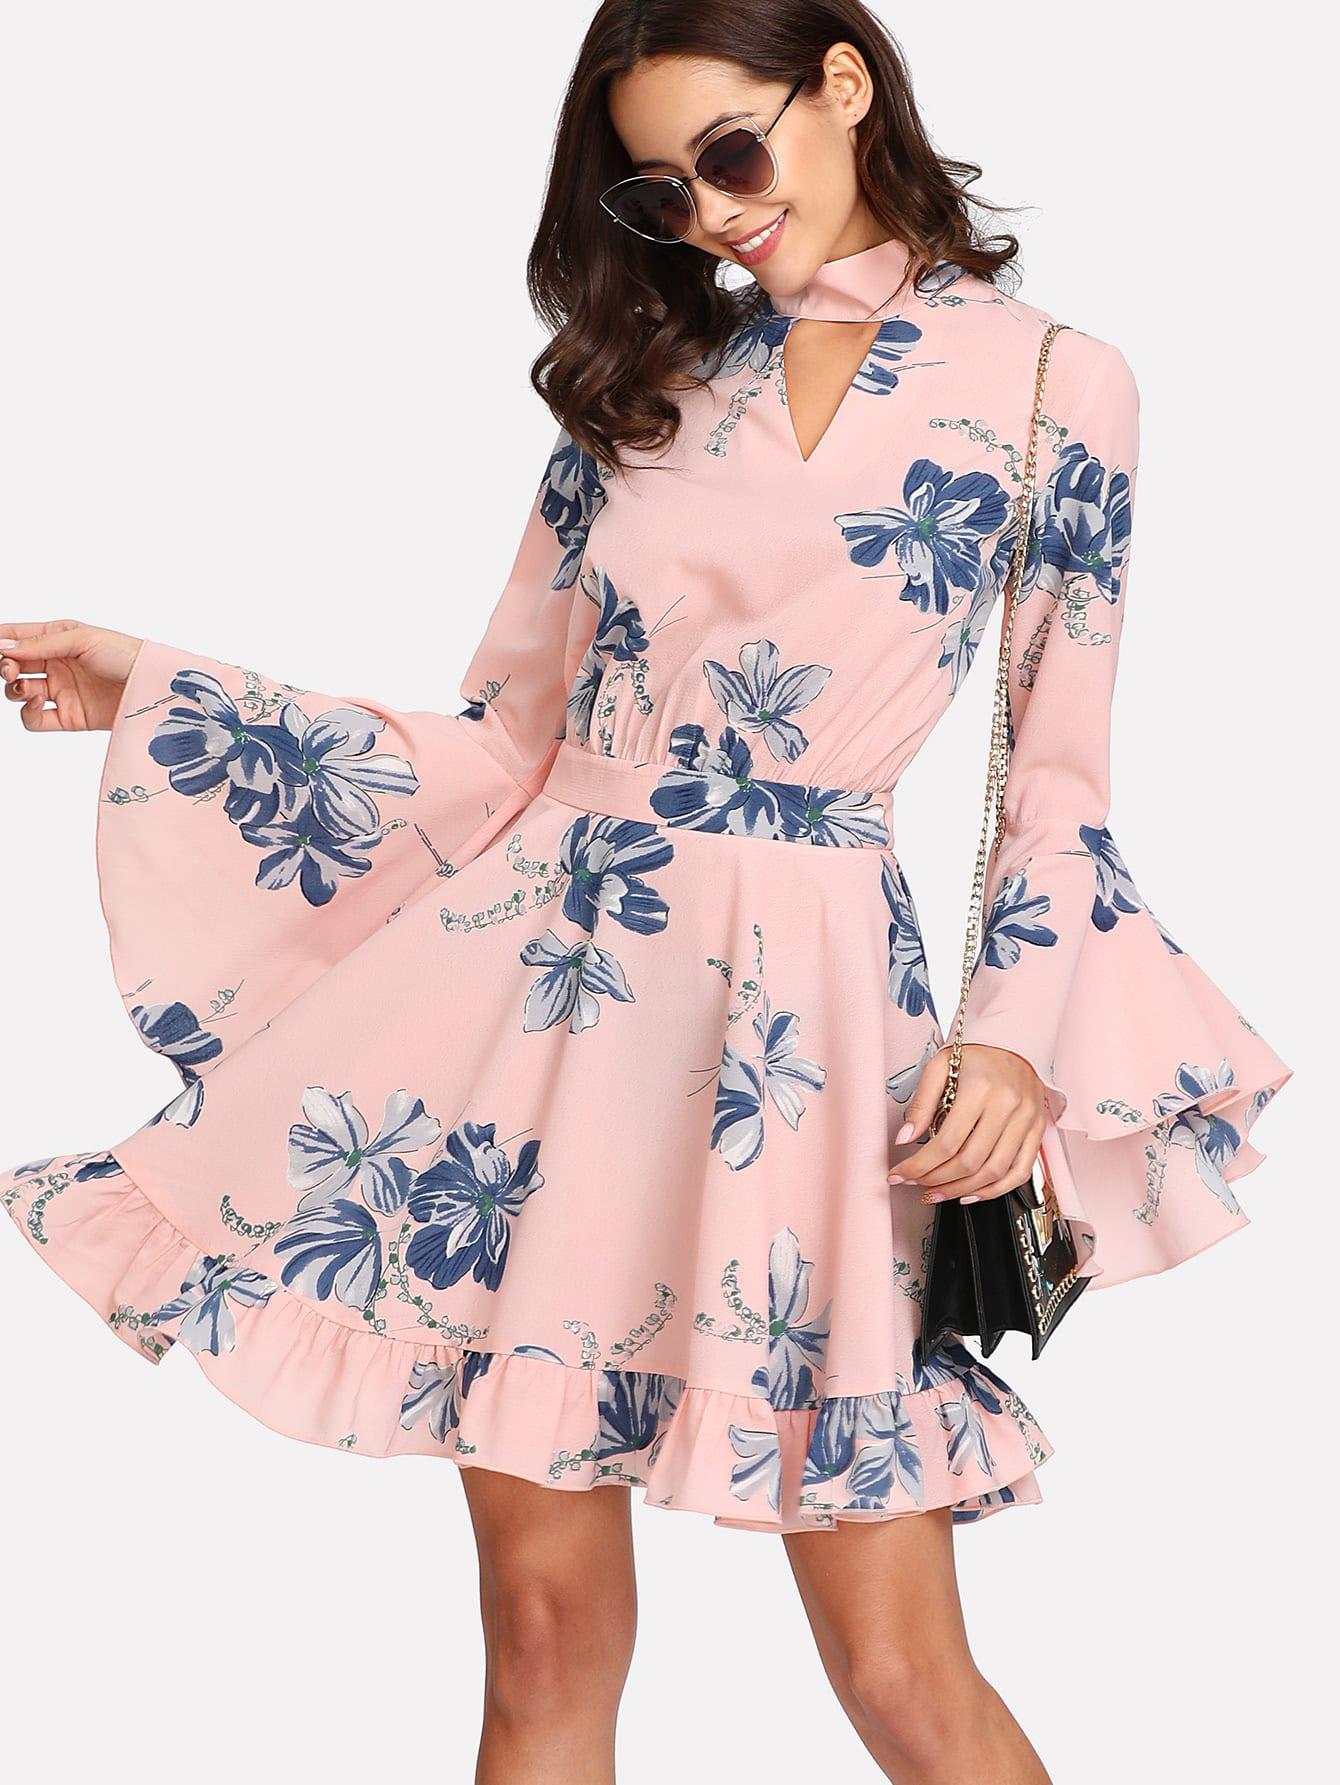 Choker Collar Flounce Sleeve Dress tie sleeve choker dress